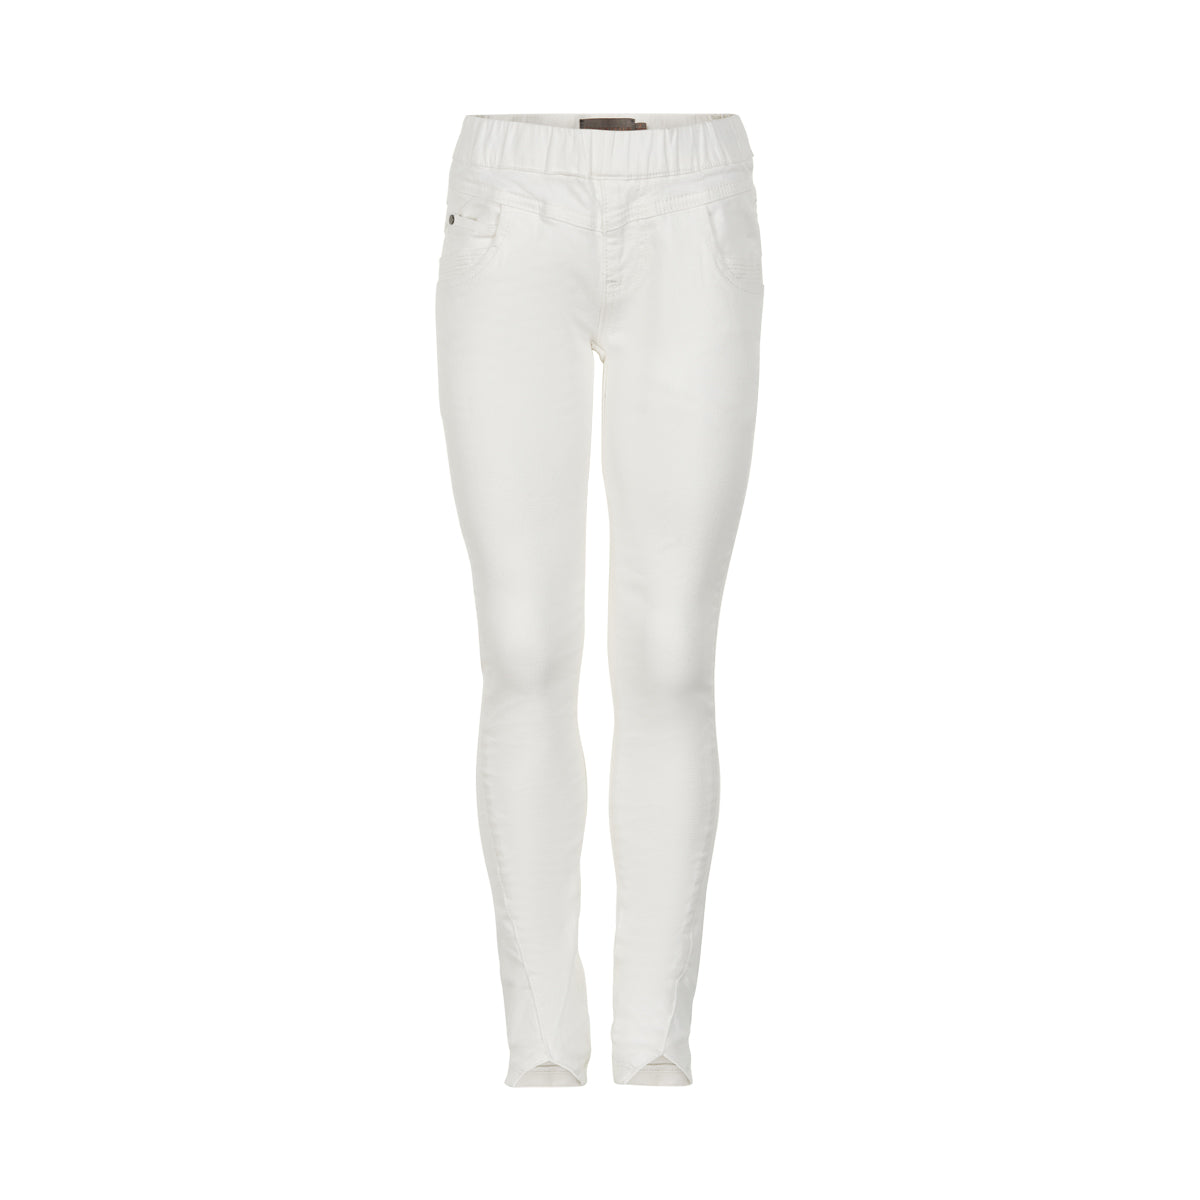 Creamie - Jeggings Denim Ankle Length (821097) - Cloud